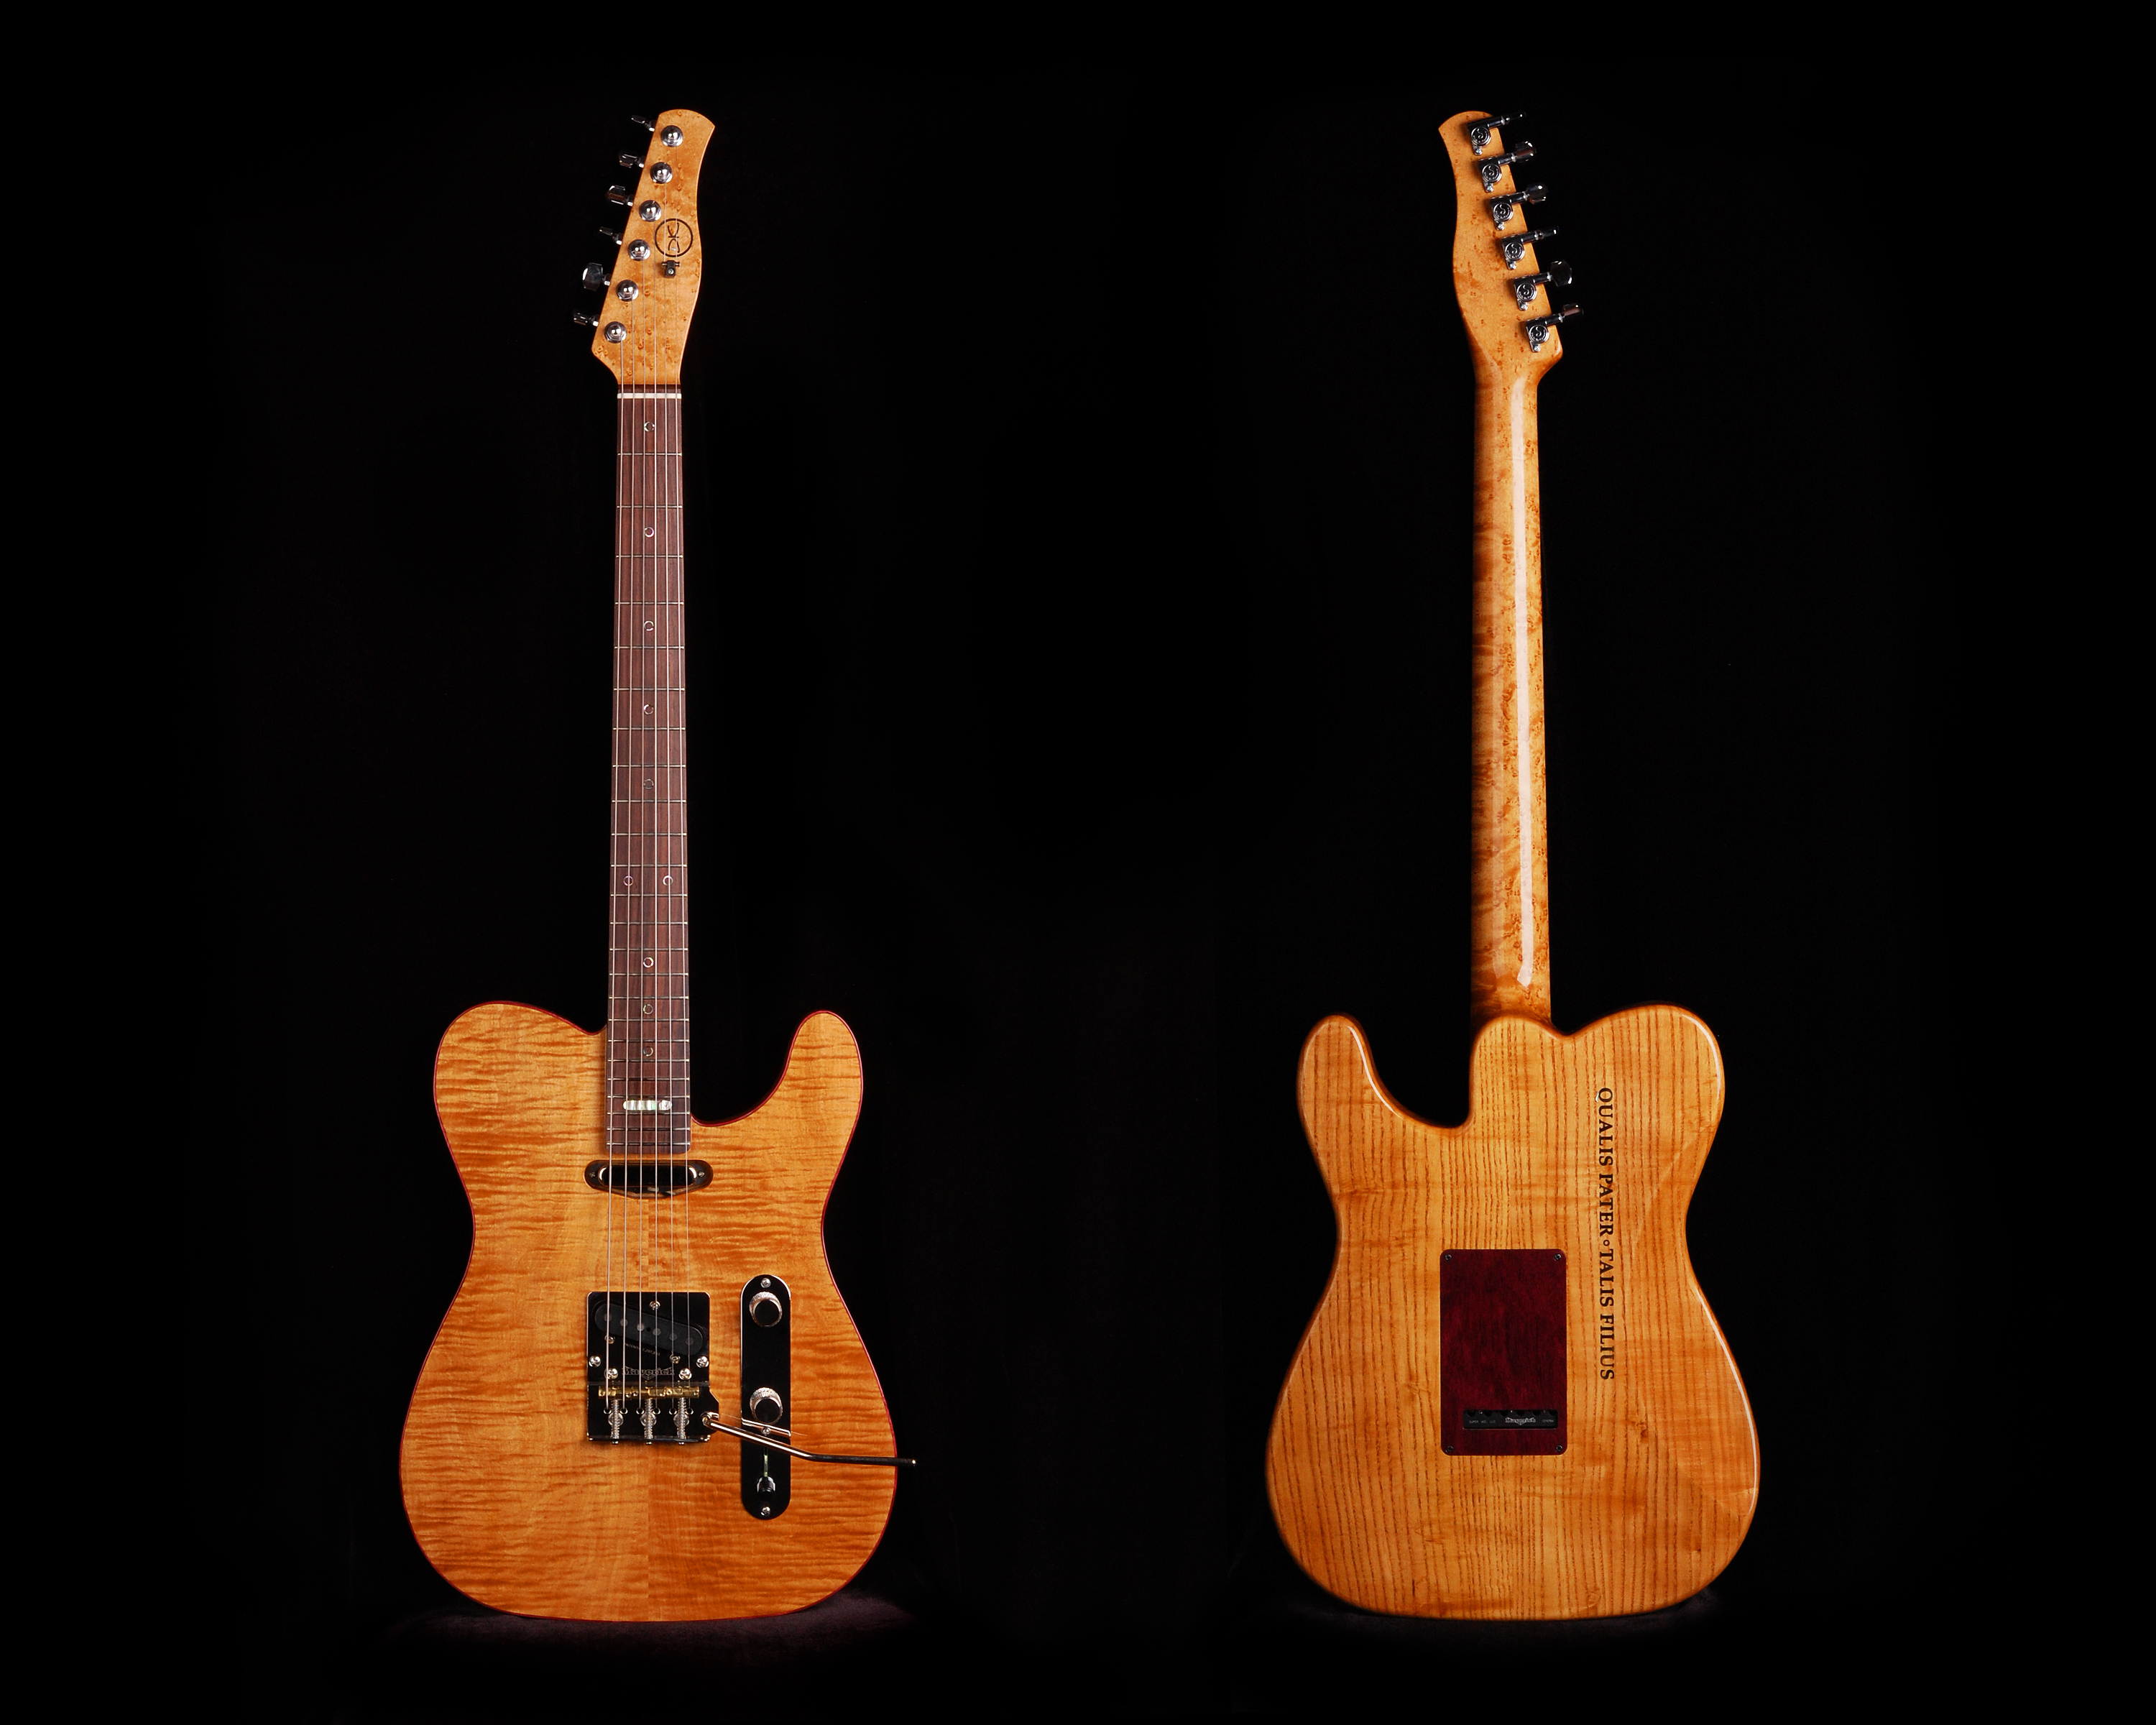 #048 Koentopp Electric Guitar Front and Back